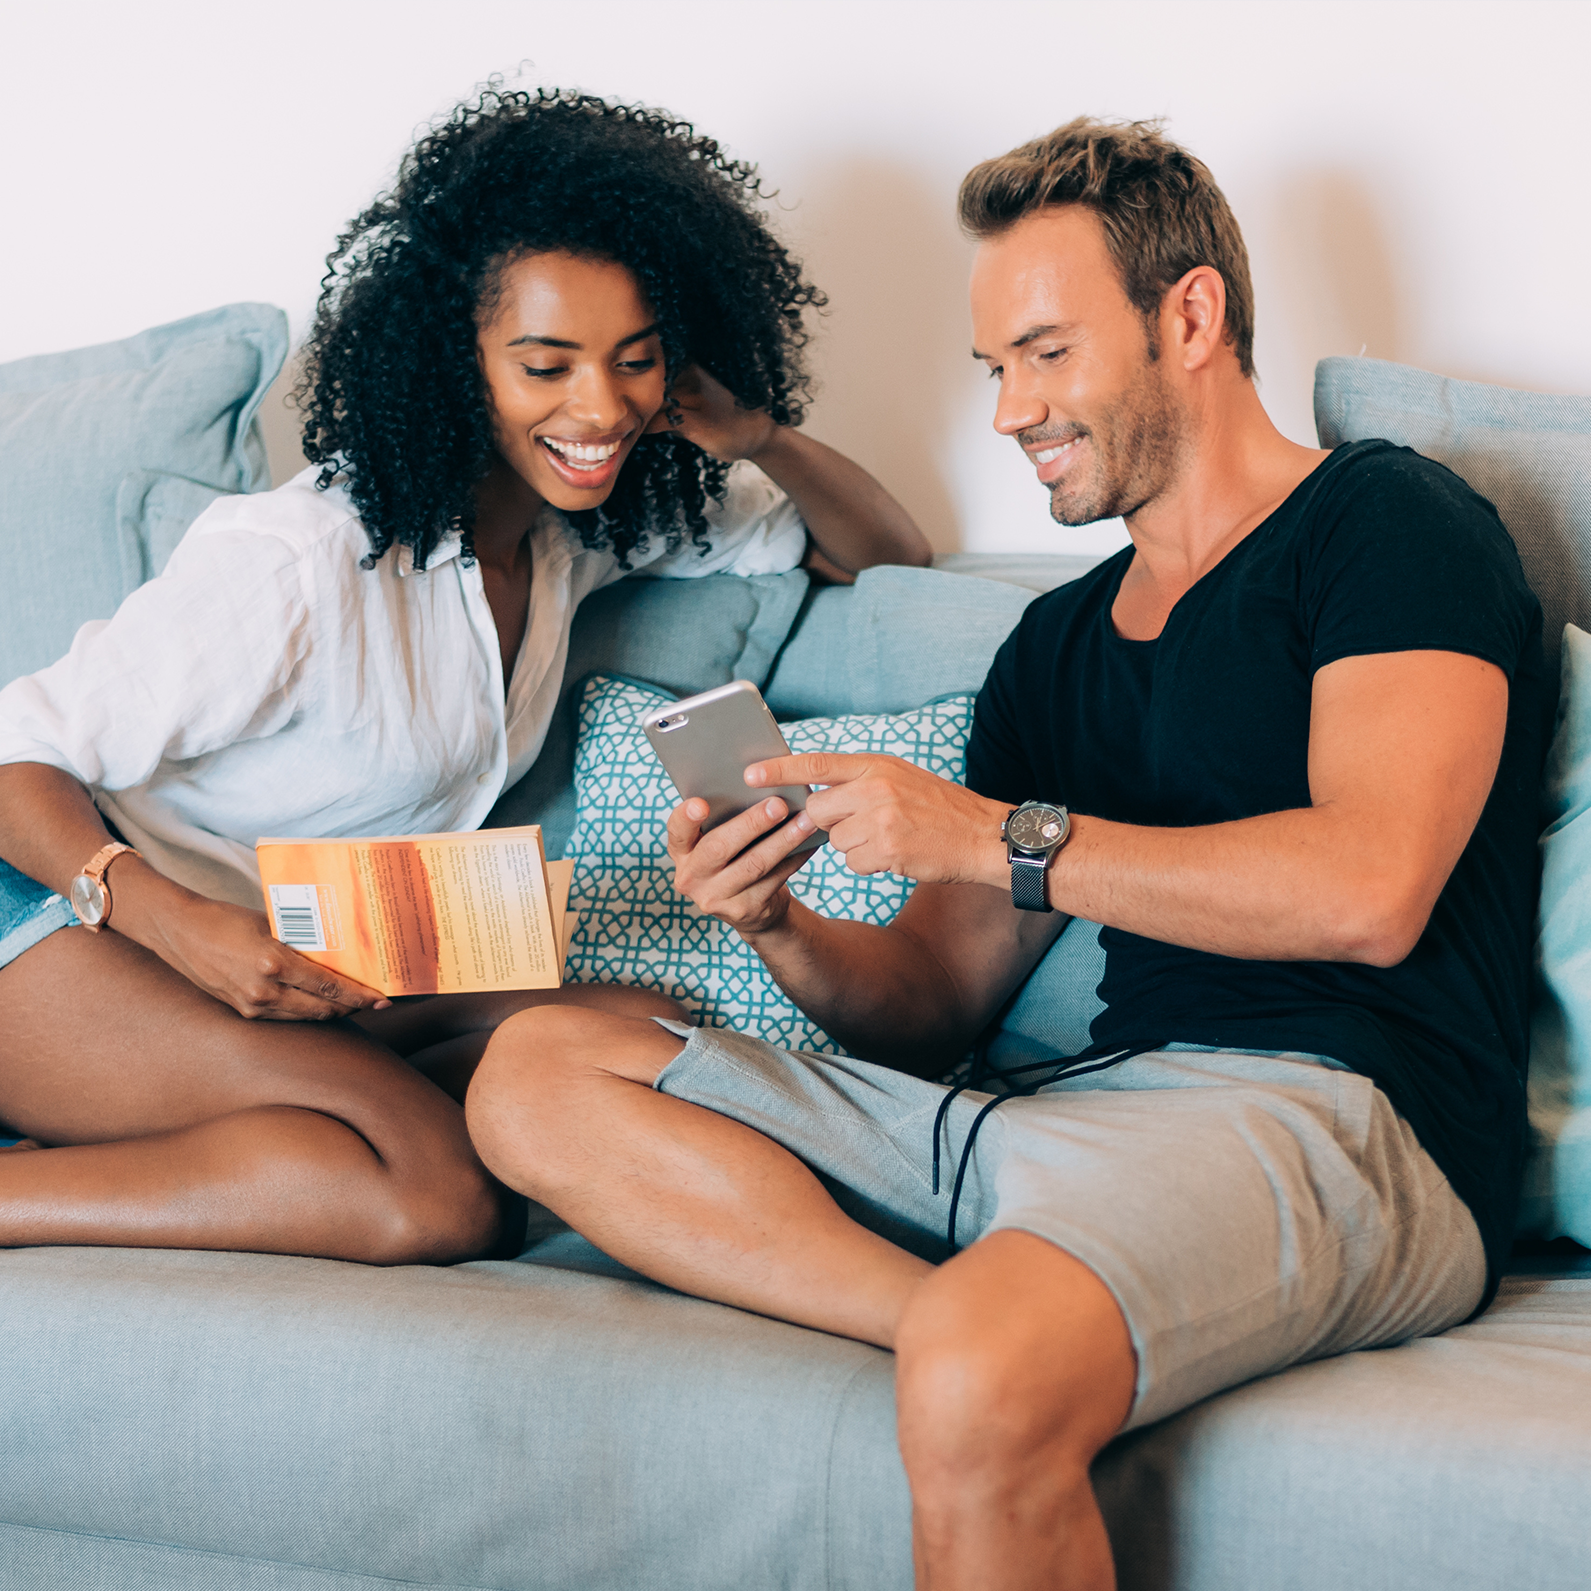 couple on sofa looking at phone